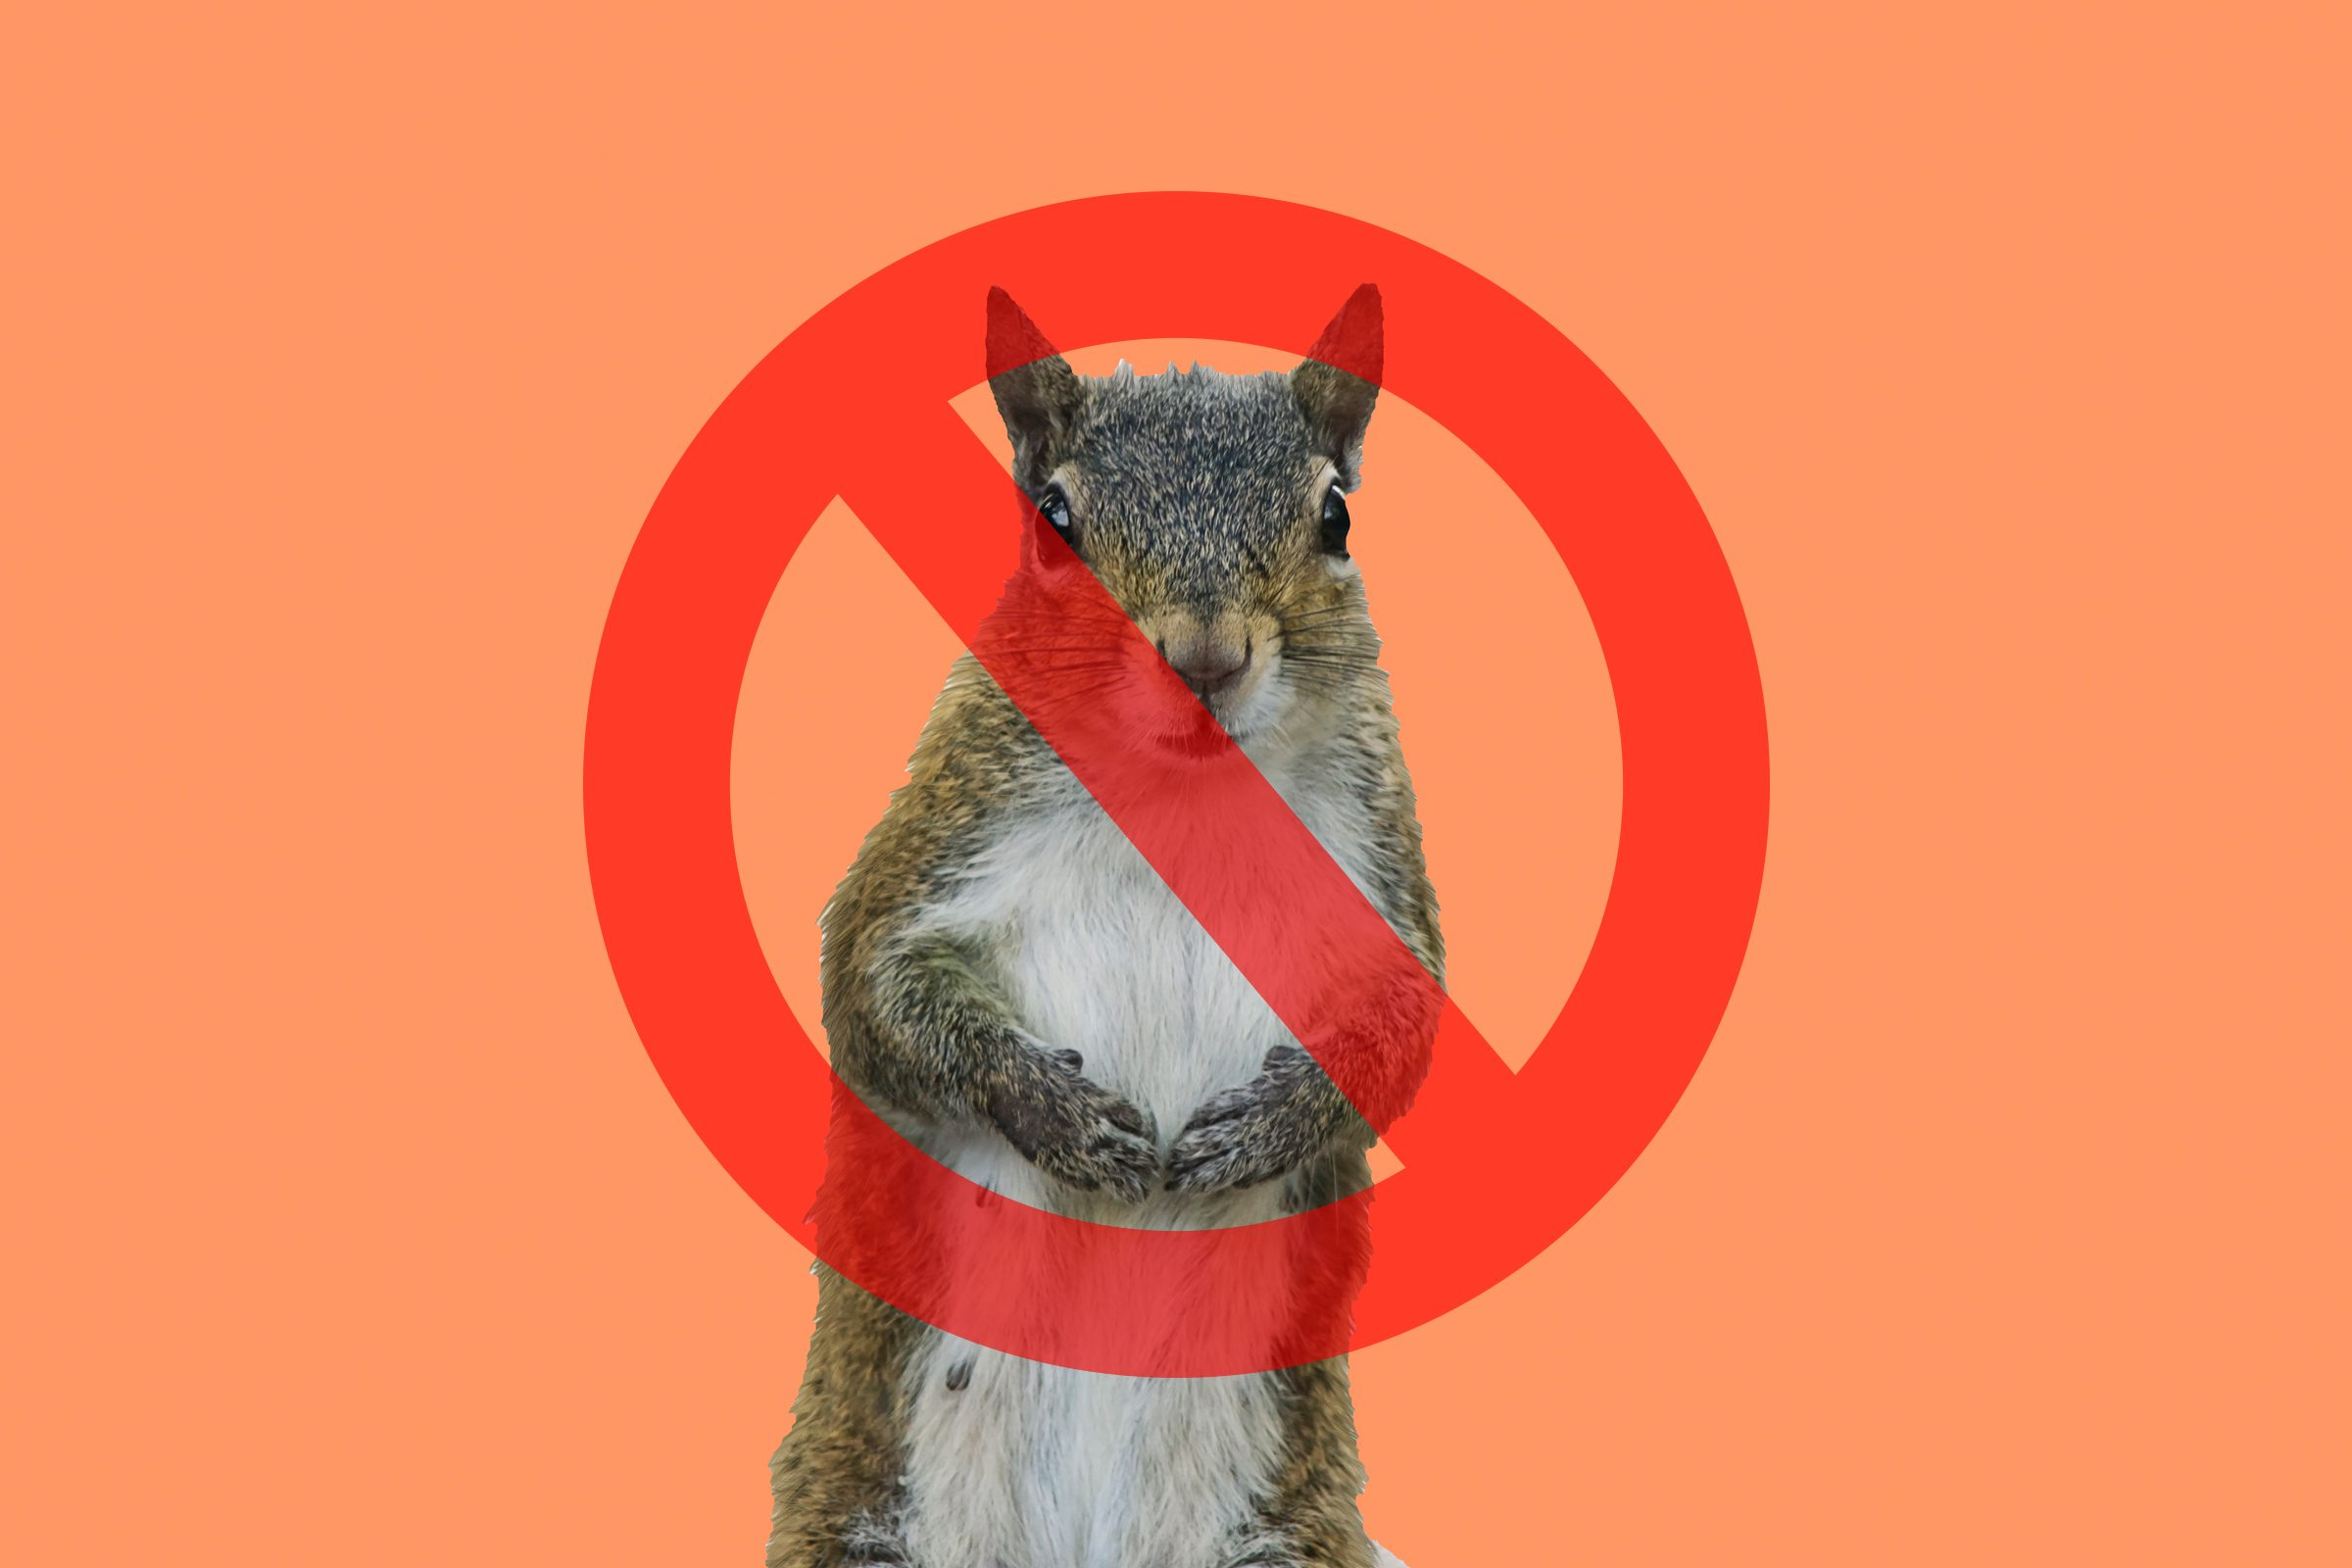 Squirrel on peach background with cancel sign through it